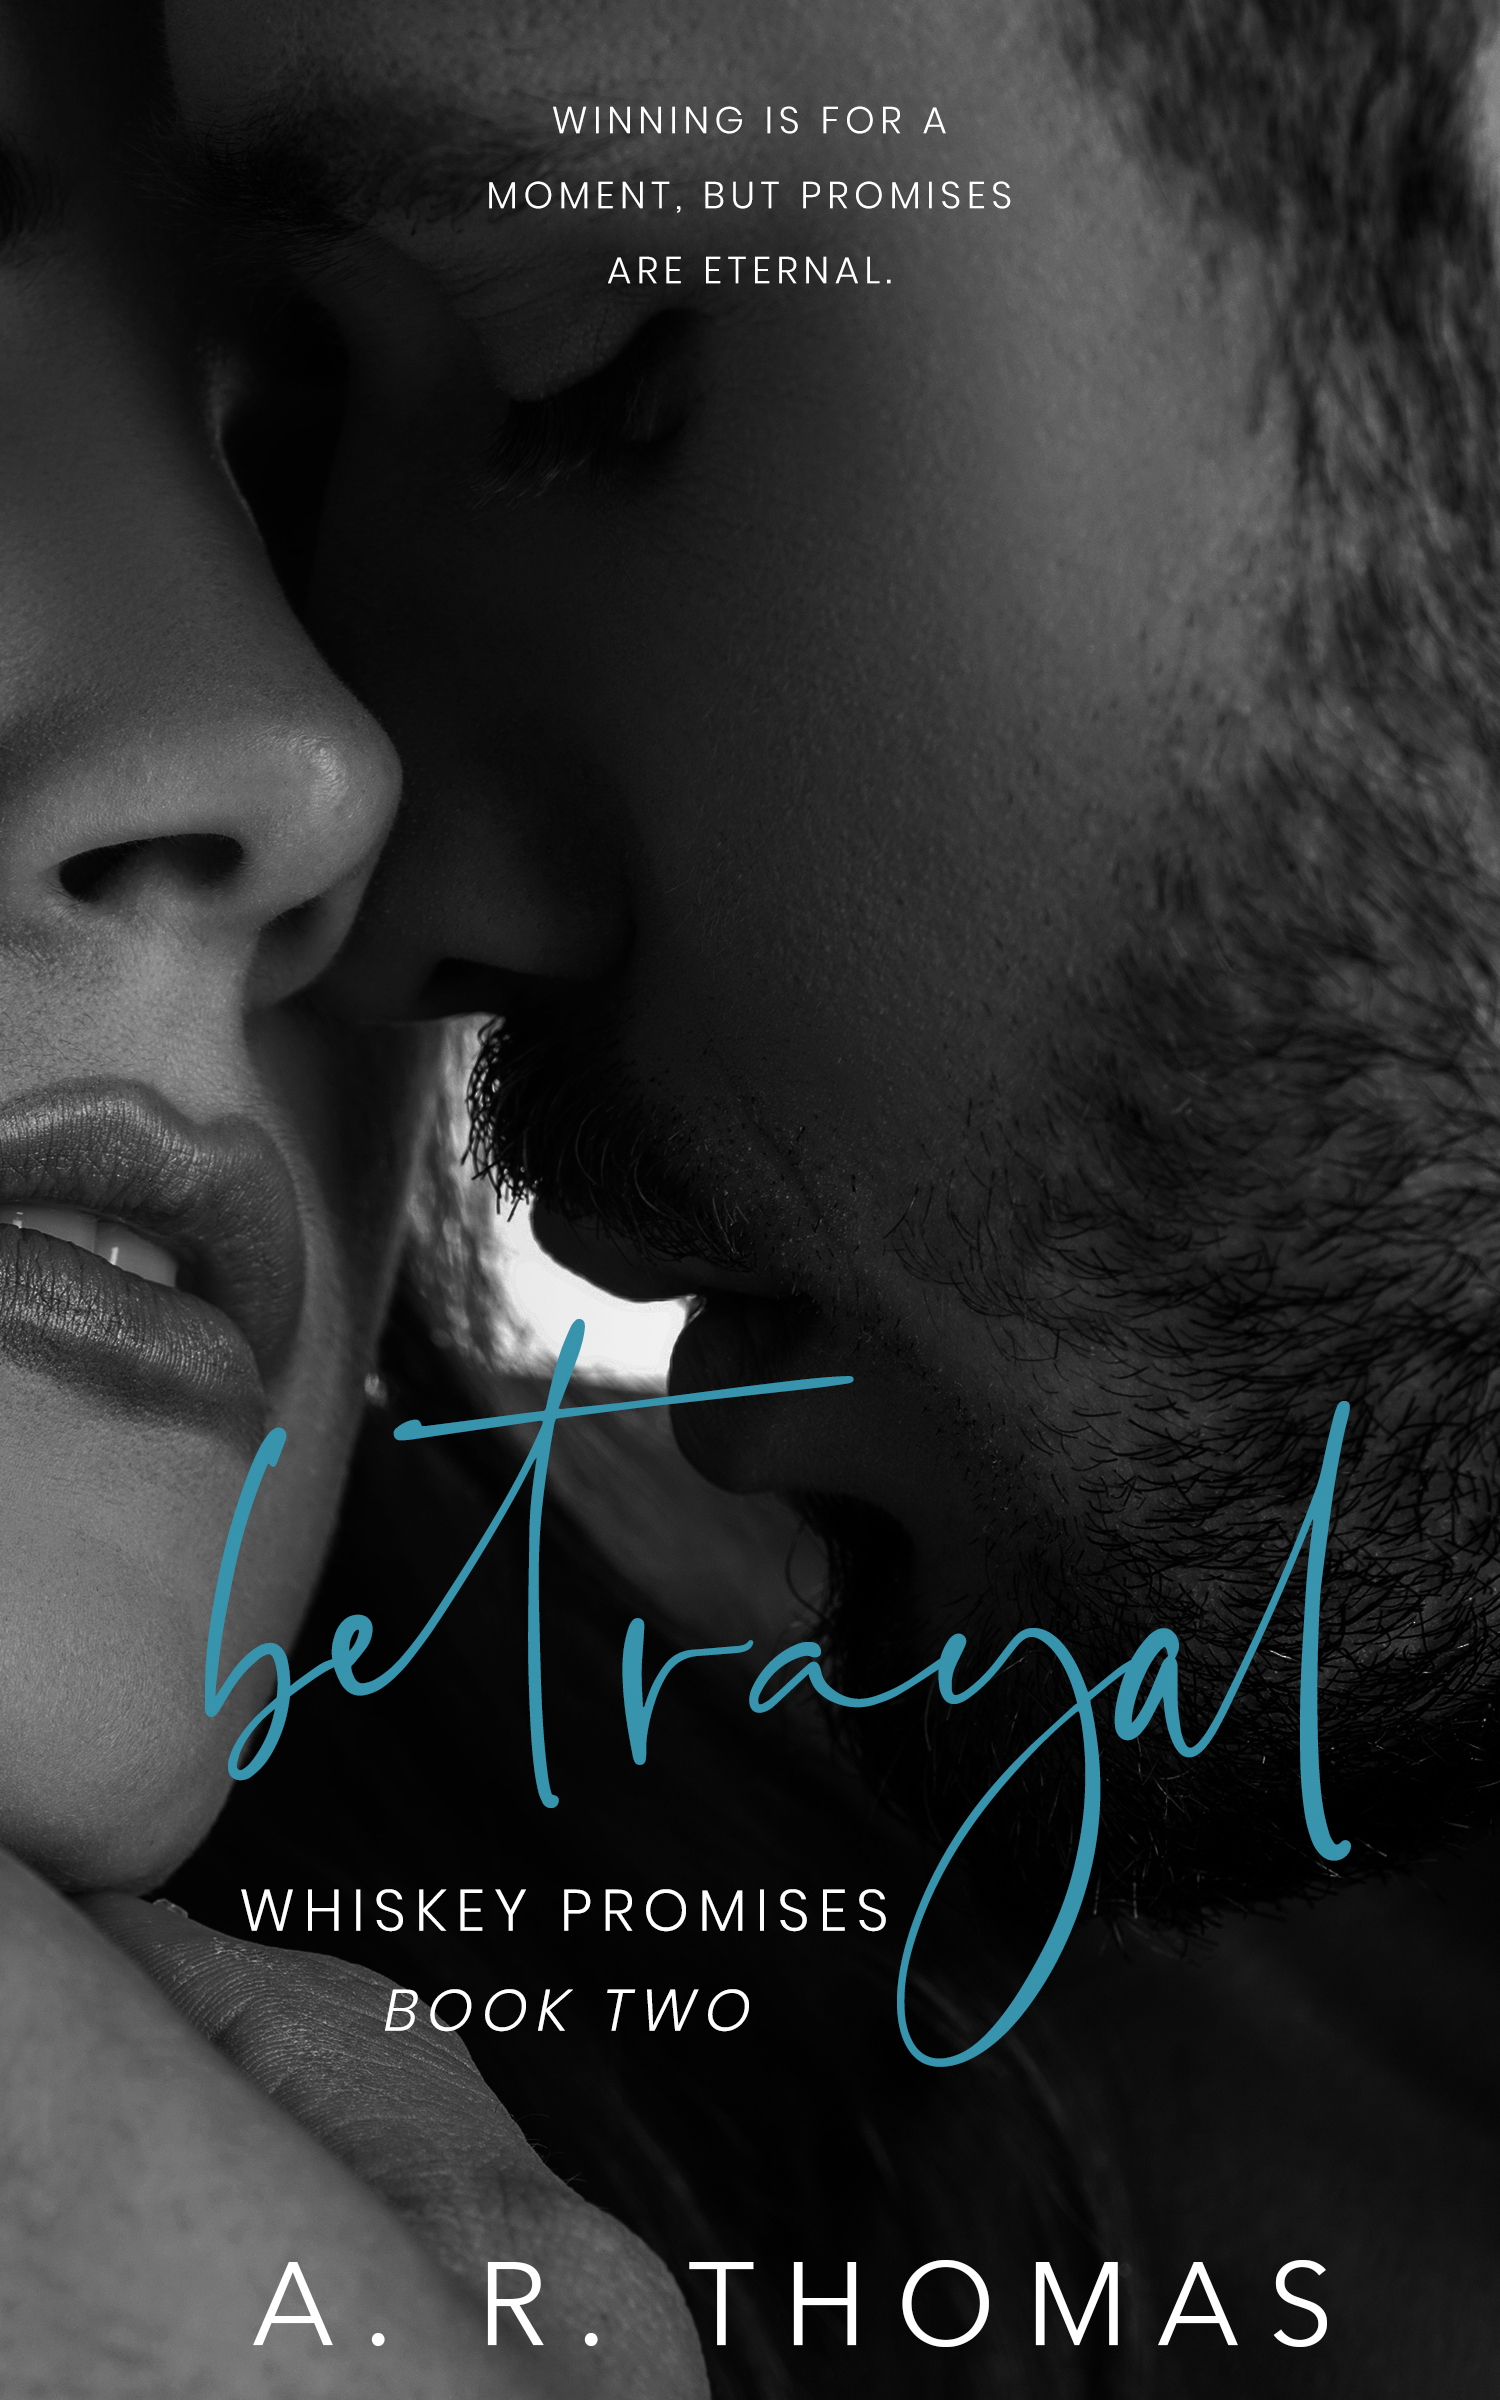 Betrayal (Whiskey Promises #2)